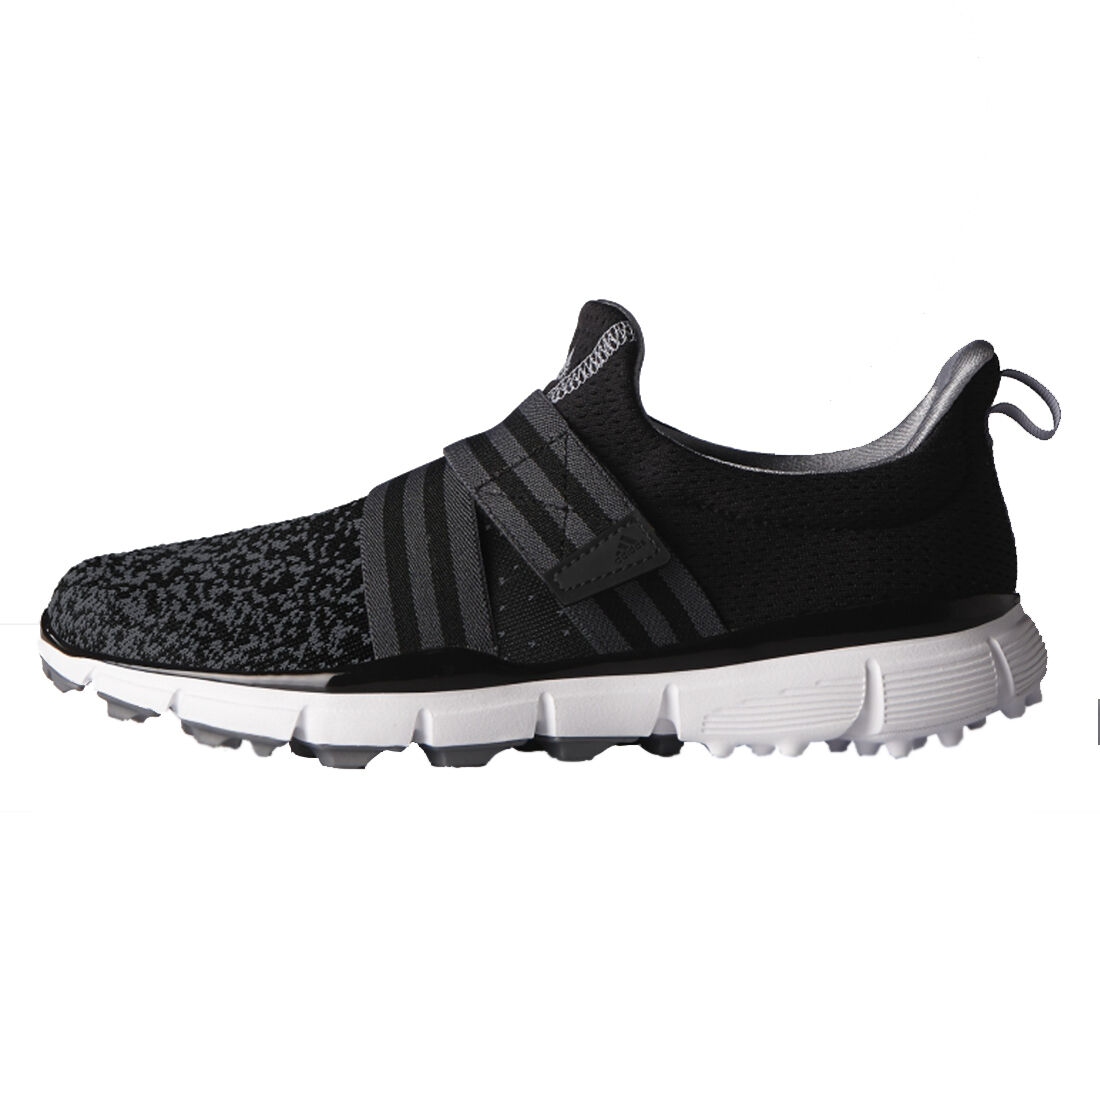 adidas climacool golf shoes